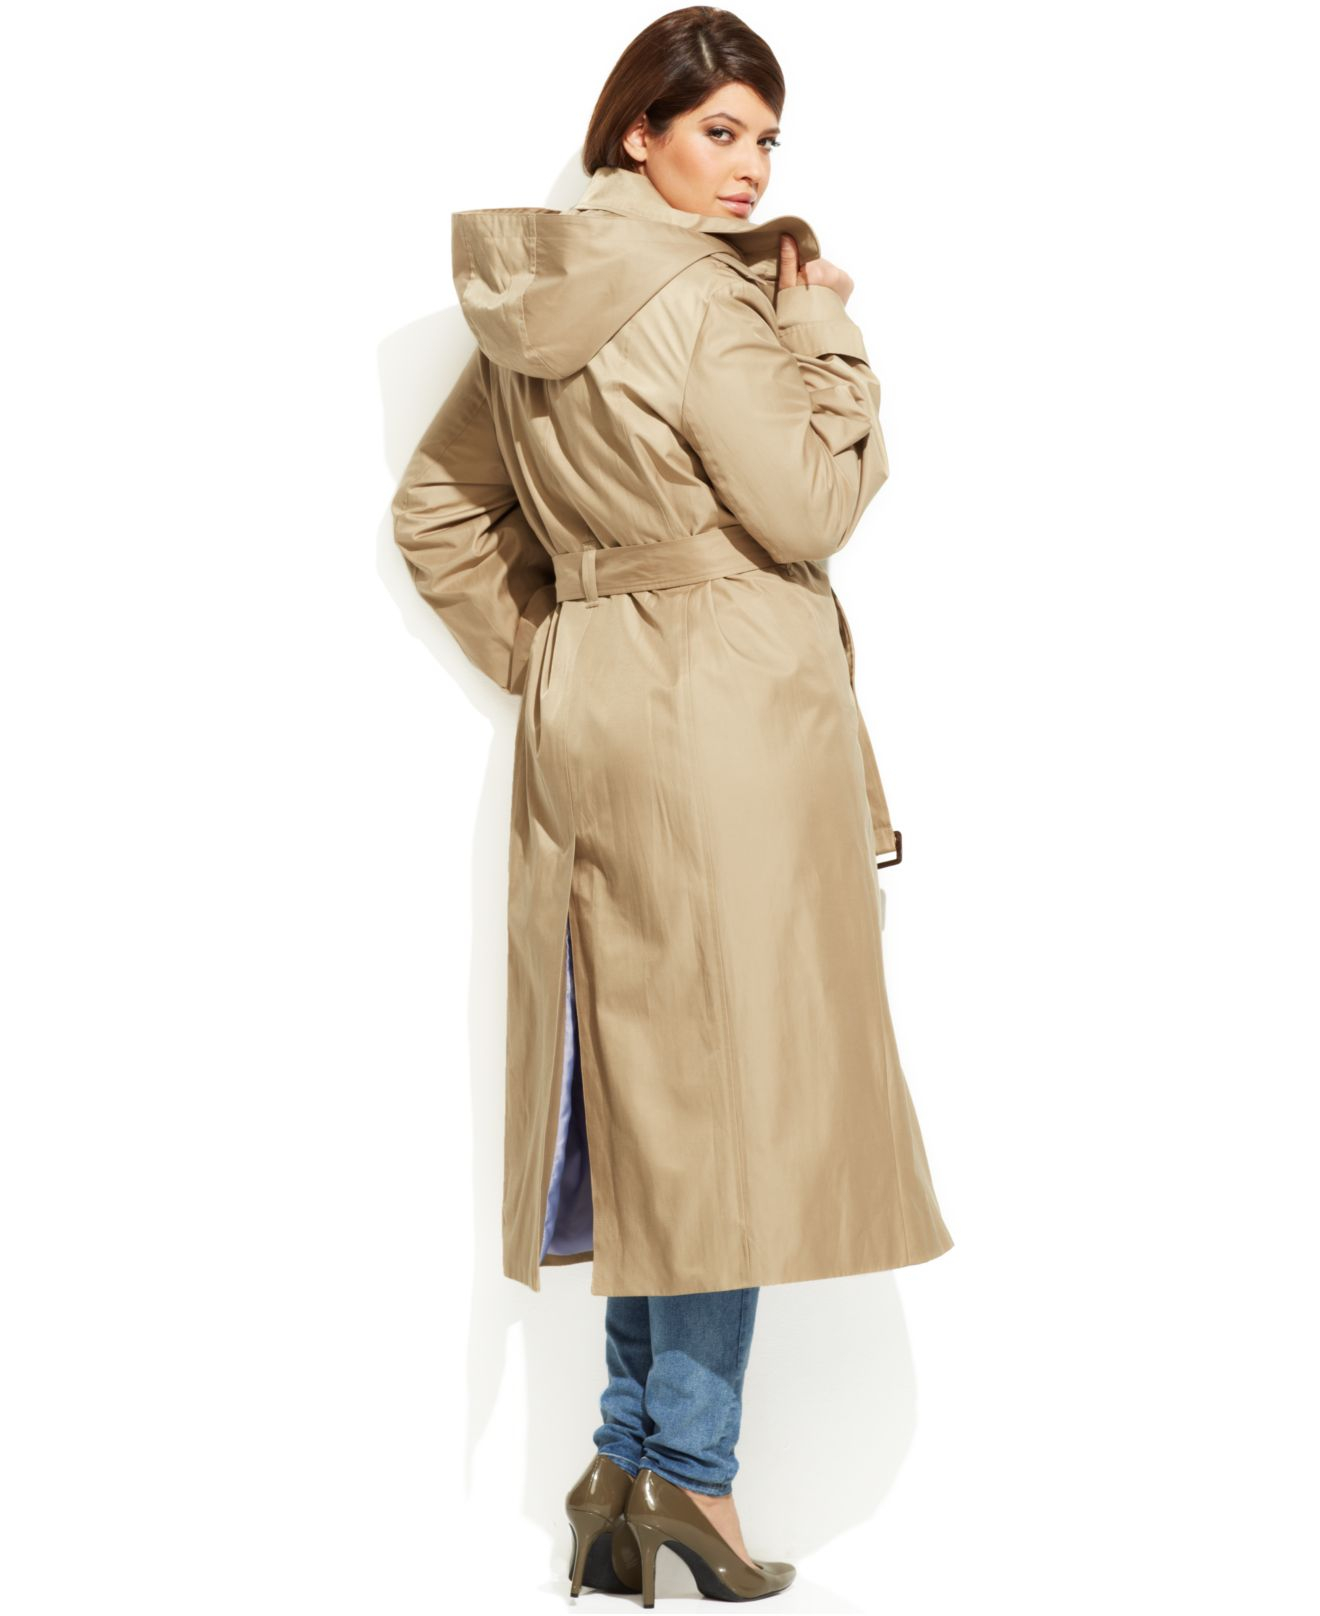 bab3ee9c7fd Lyst - London Fog Plus Size Hooded Belted Maxi Trench Coat in Natural